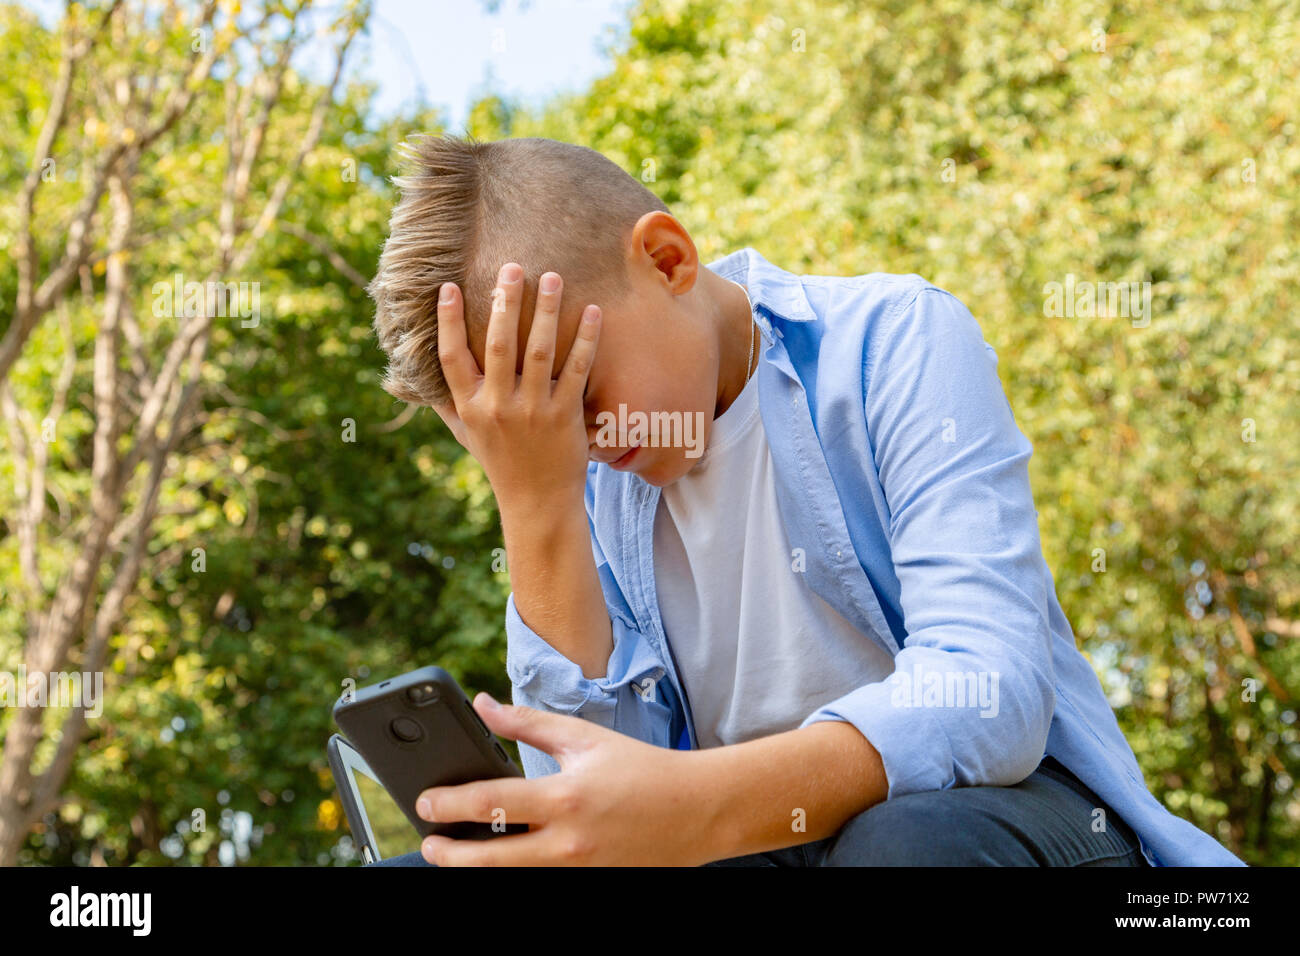 childhood, augmented reality, technology and people concept - boy with upset face looks into the smartphone outdoors at summer - Stock Image